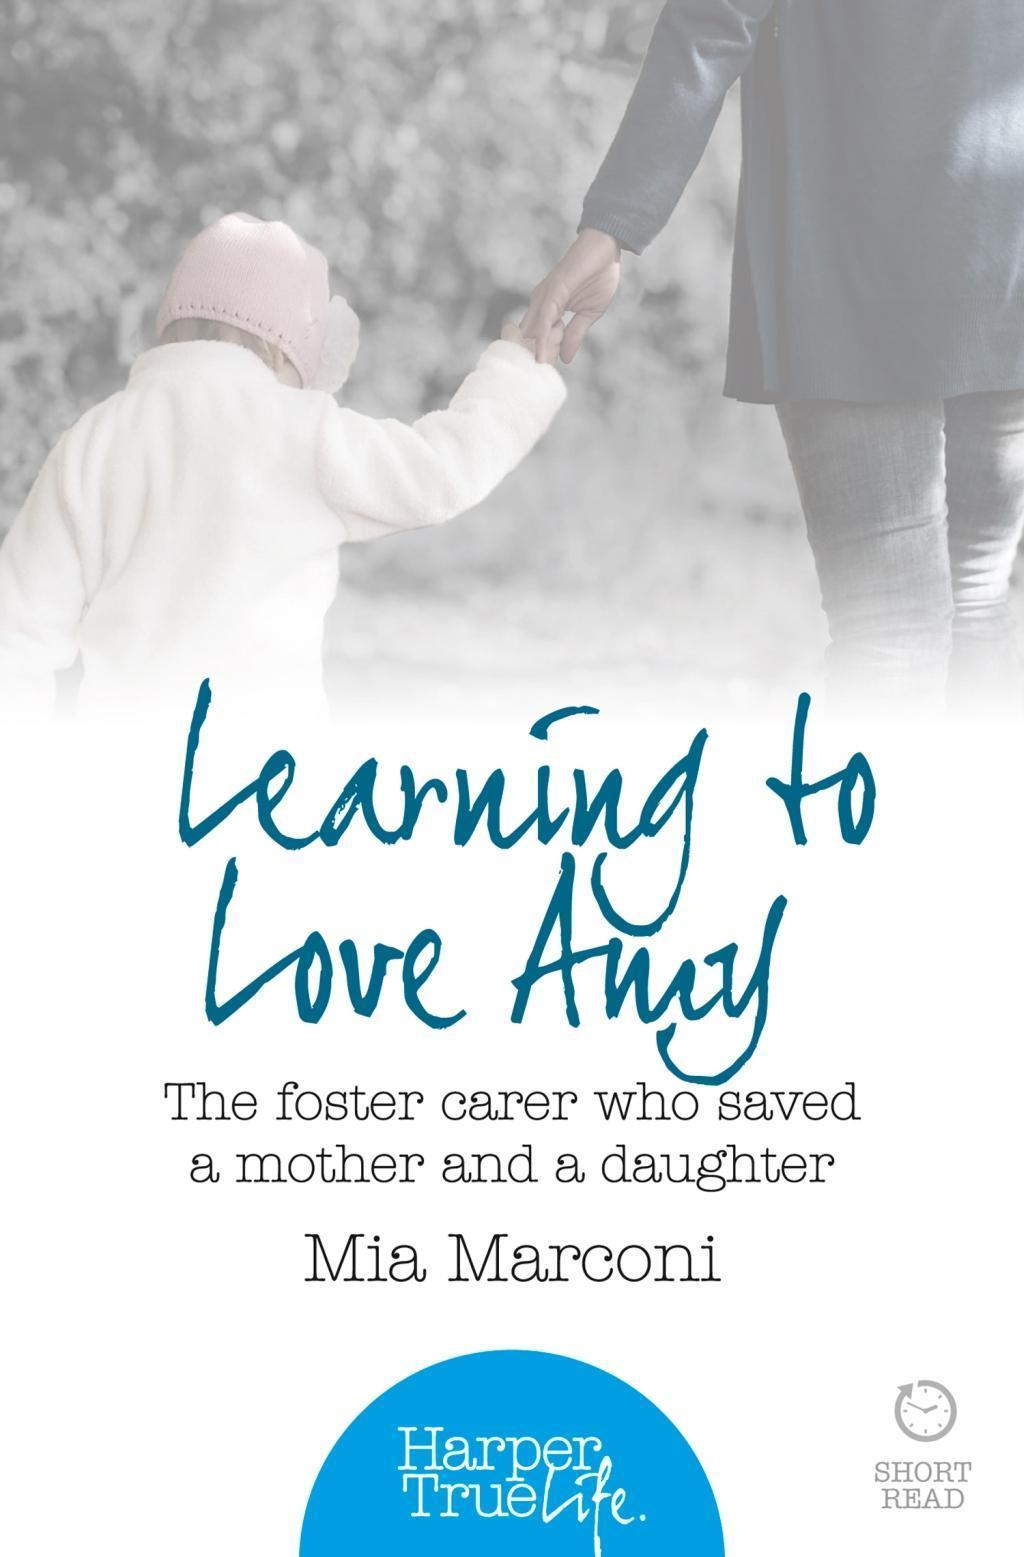 Learning to Love Amy: The foster carer who saved a mother and a daughter (HarperTrue Life - A Short Read)